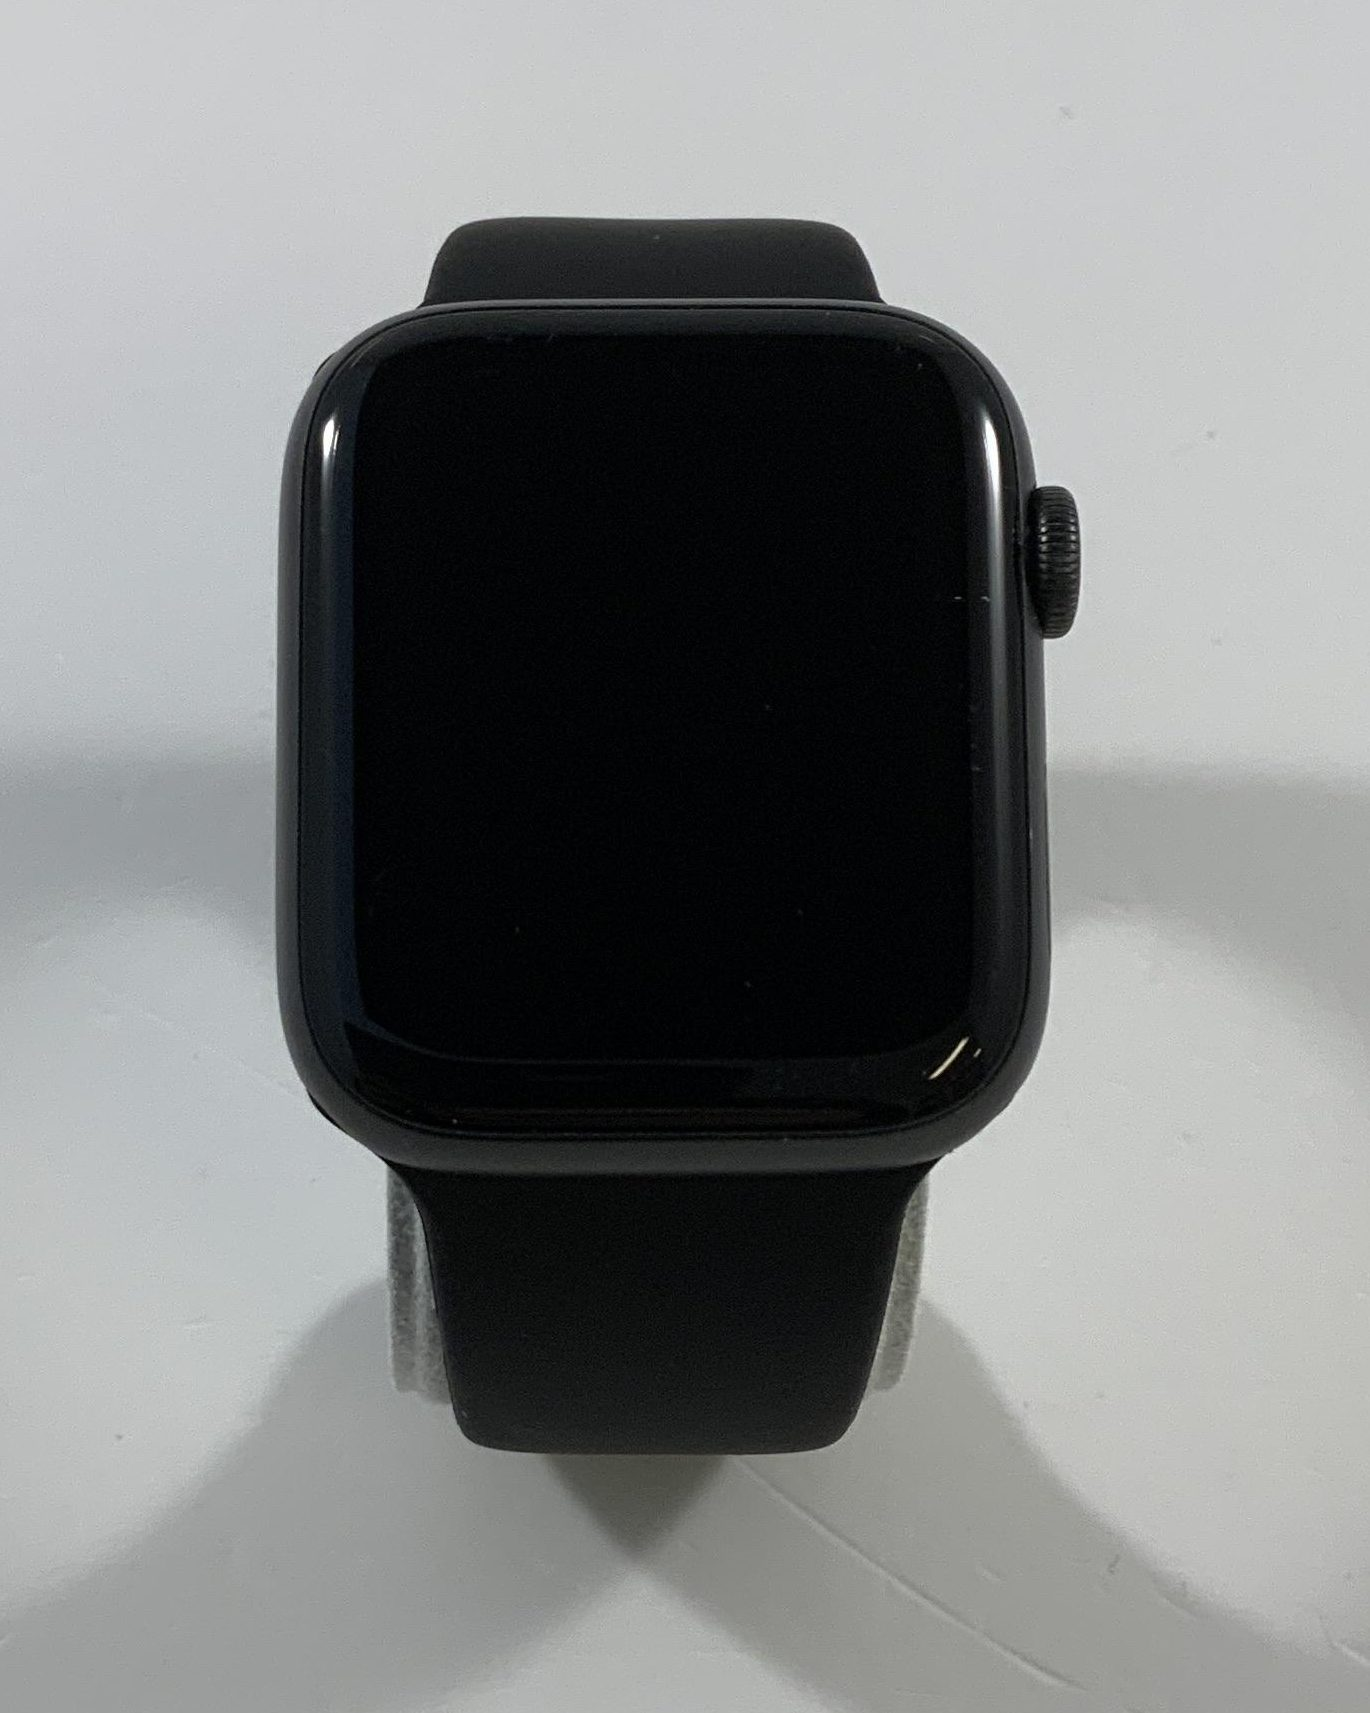 Watch Series 6 Aluminum Cellular (44mm), Space Gray, immagine 1